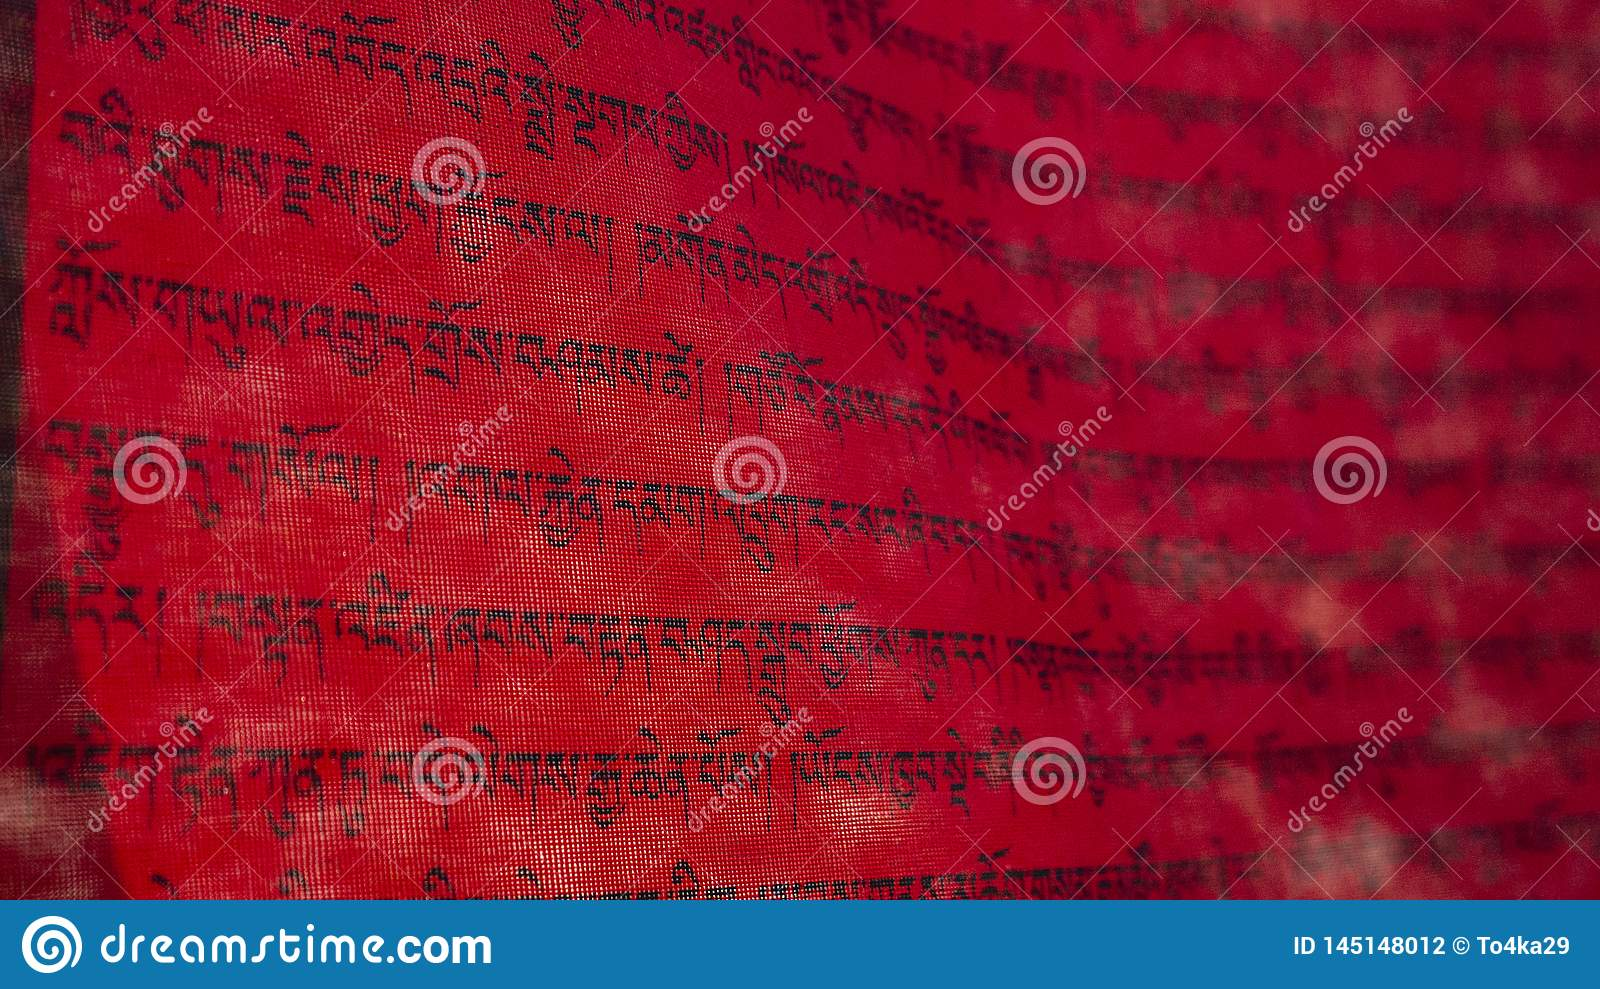 Tibetan letters on red textile. Mantra. Calligraphy